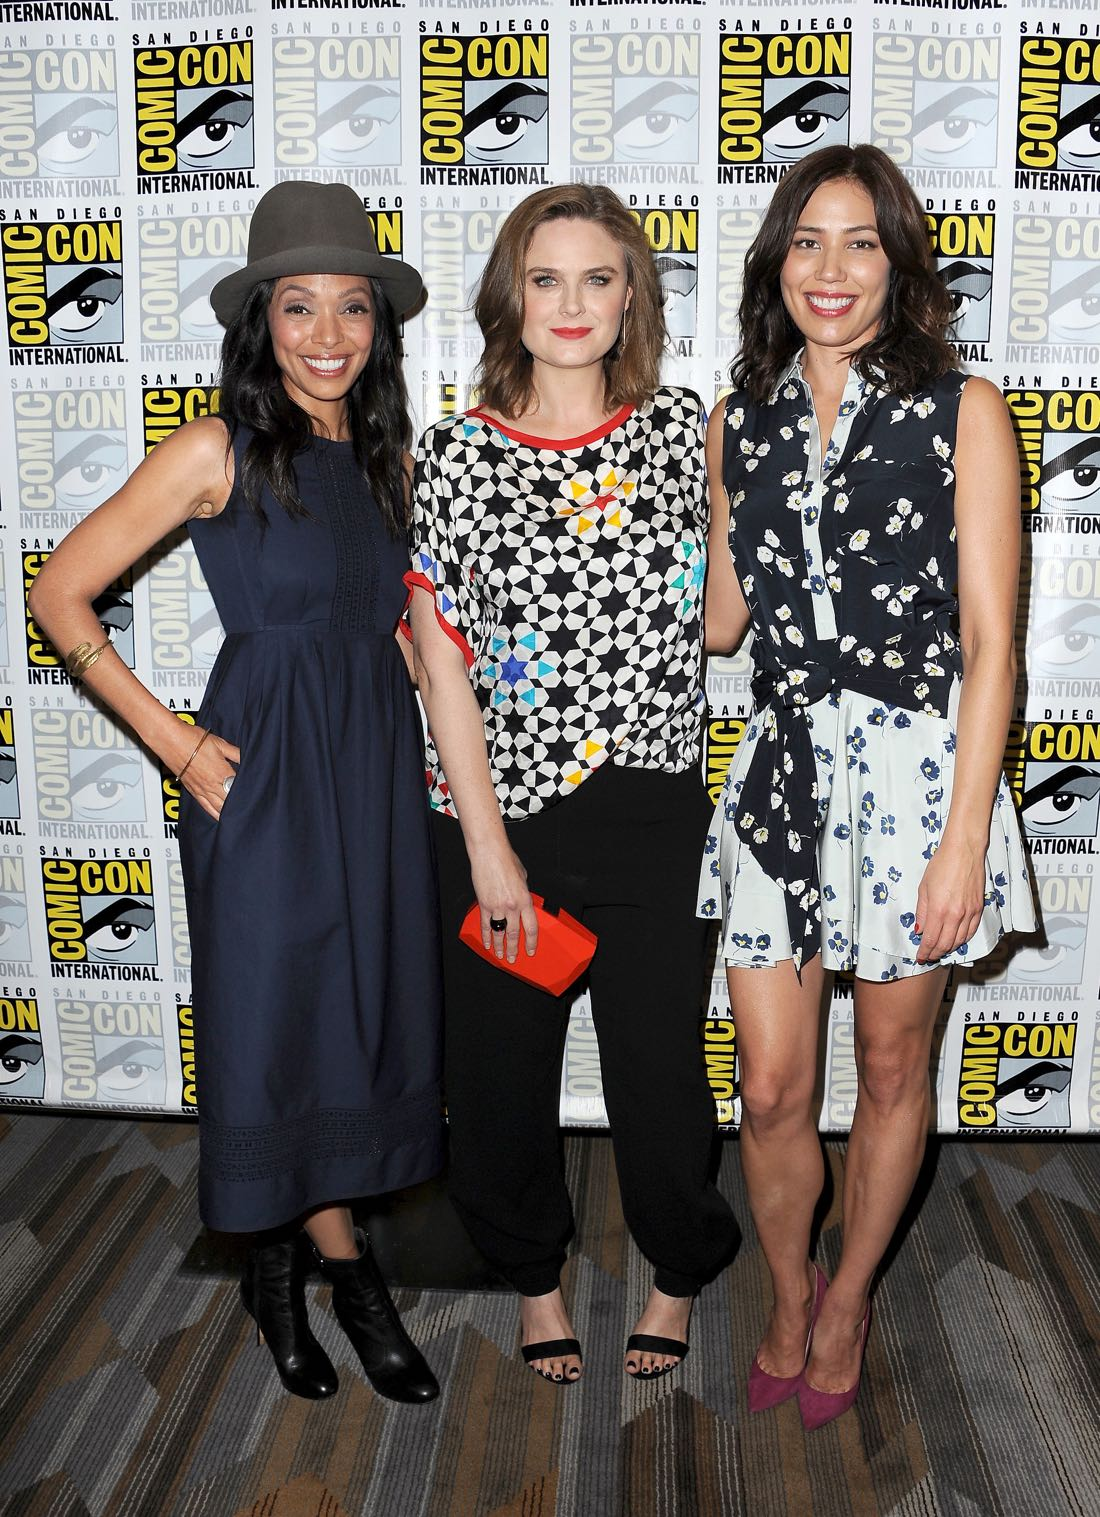 FOX FANFARE AT SAN DIEGO COMIC-CON © 2016: L-R: BONES cast members Tamara Taylor, Emily Deschanel and Michaela Conlin during the BONES press room on Friday, July 22 at the FOX FANFARE AT SAN DIEGO COMIC-CON © 2016. CR: Scott Kirkland/FOX © 2016 FOX BROADCASTING